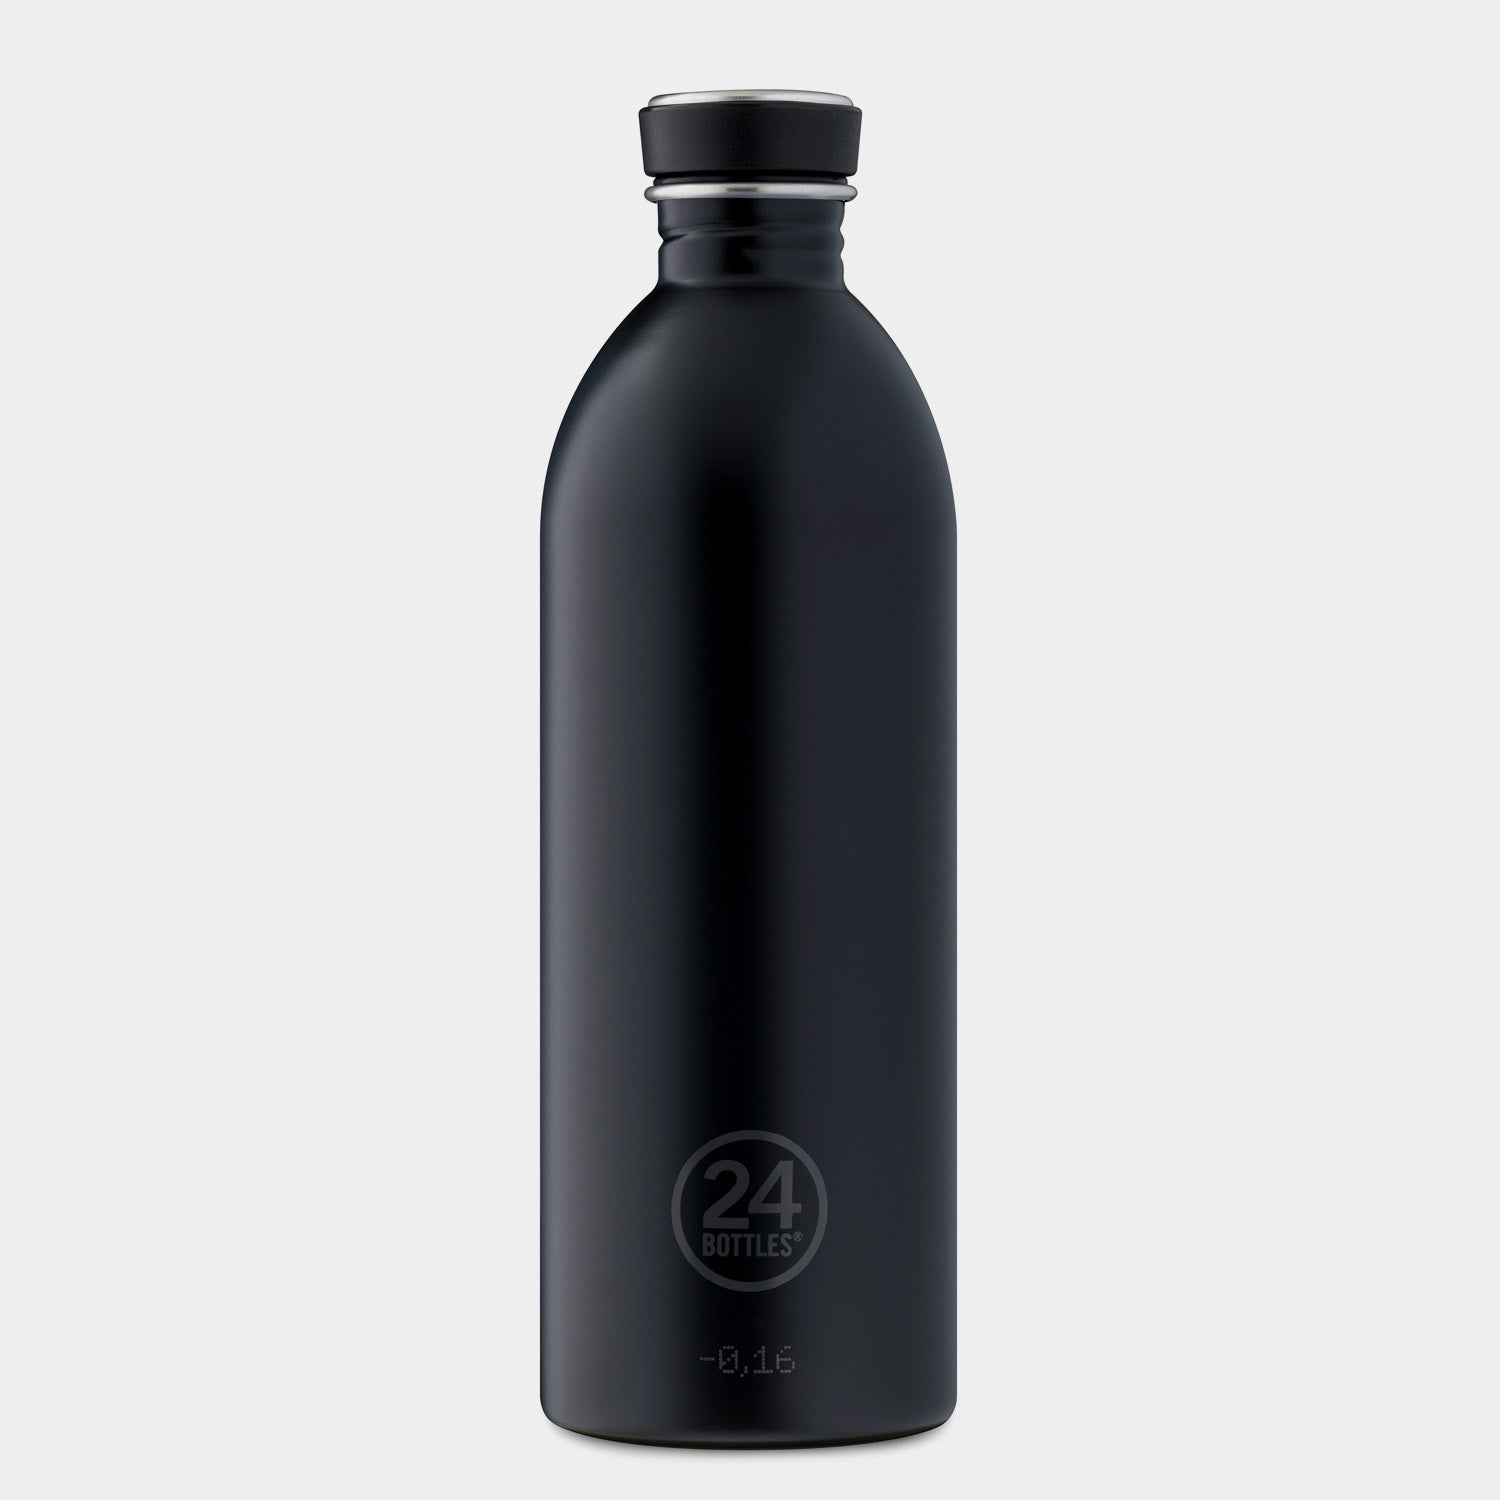 24Bottles Tuxedo Black Urban Bottle - 1L